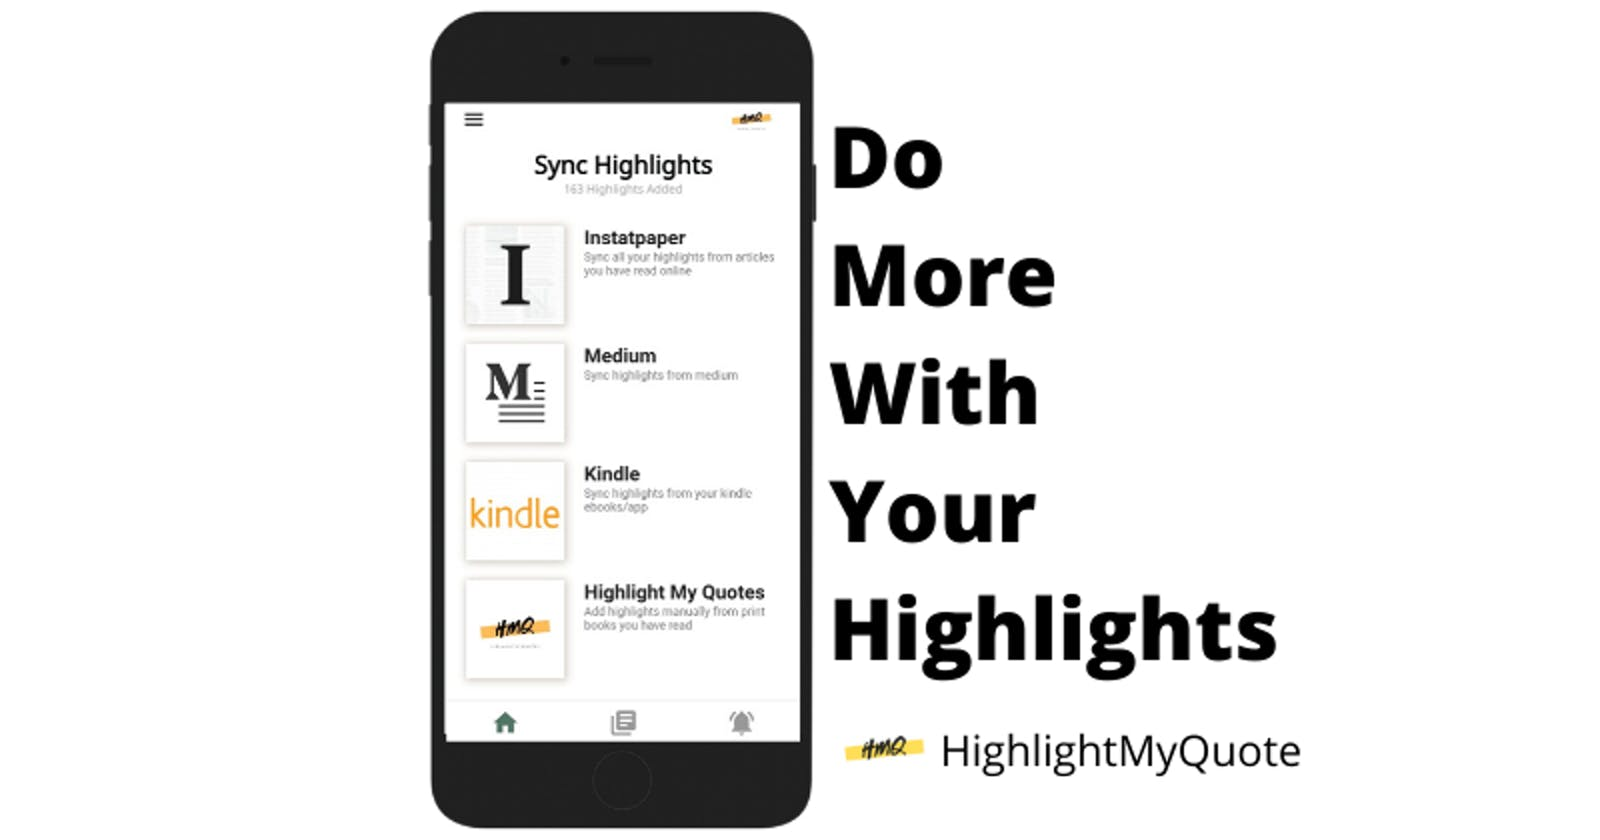 How I Built My First Flutter App - HighlightMyQuotes